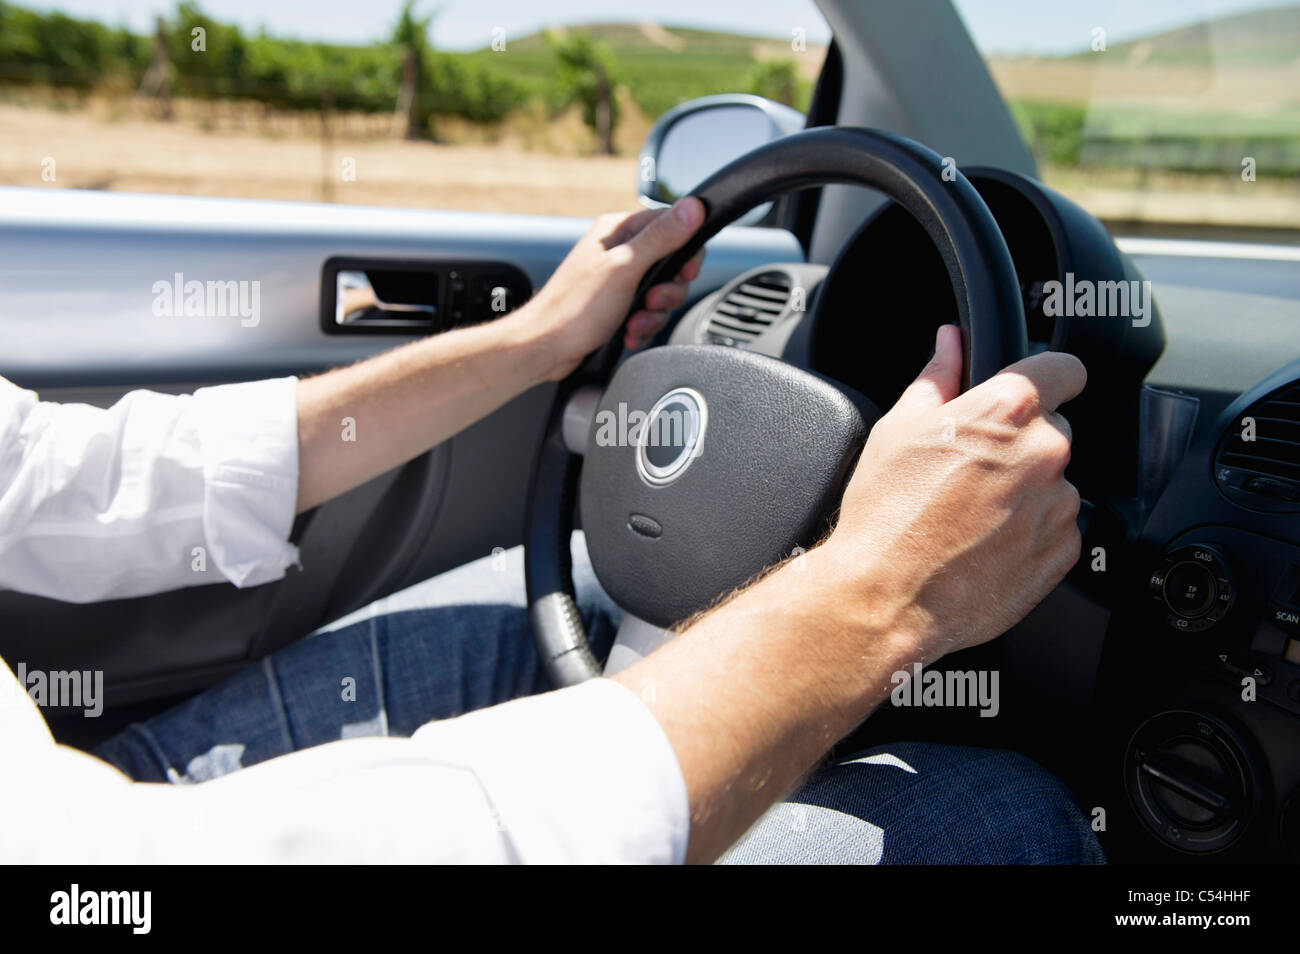 Mid adult man's hand holding a steering wheel of convertible car - Stock Image